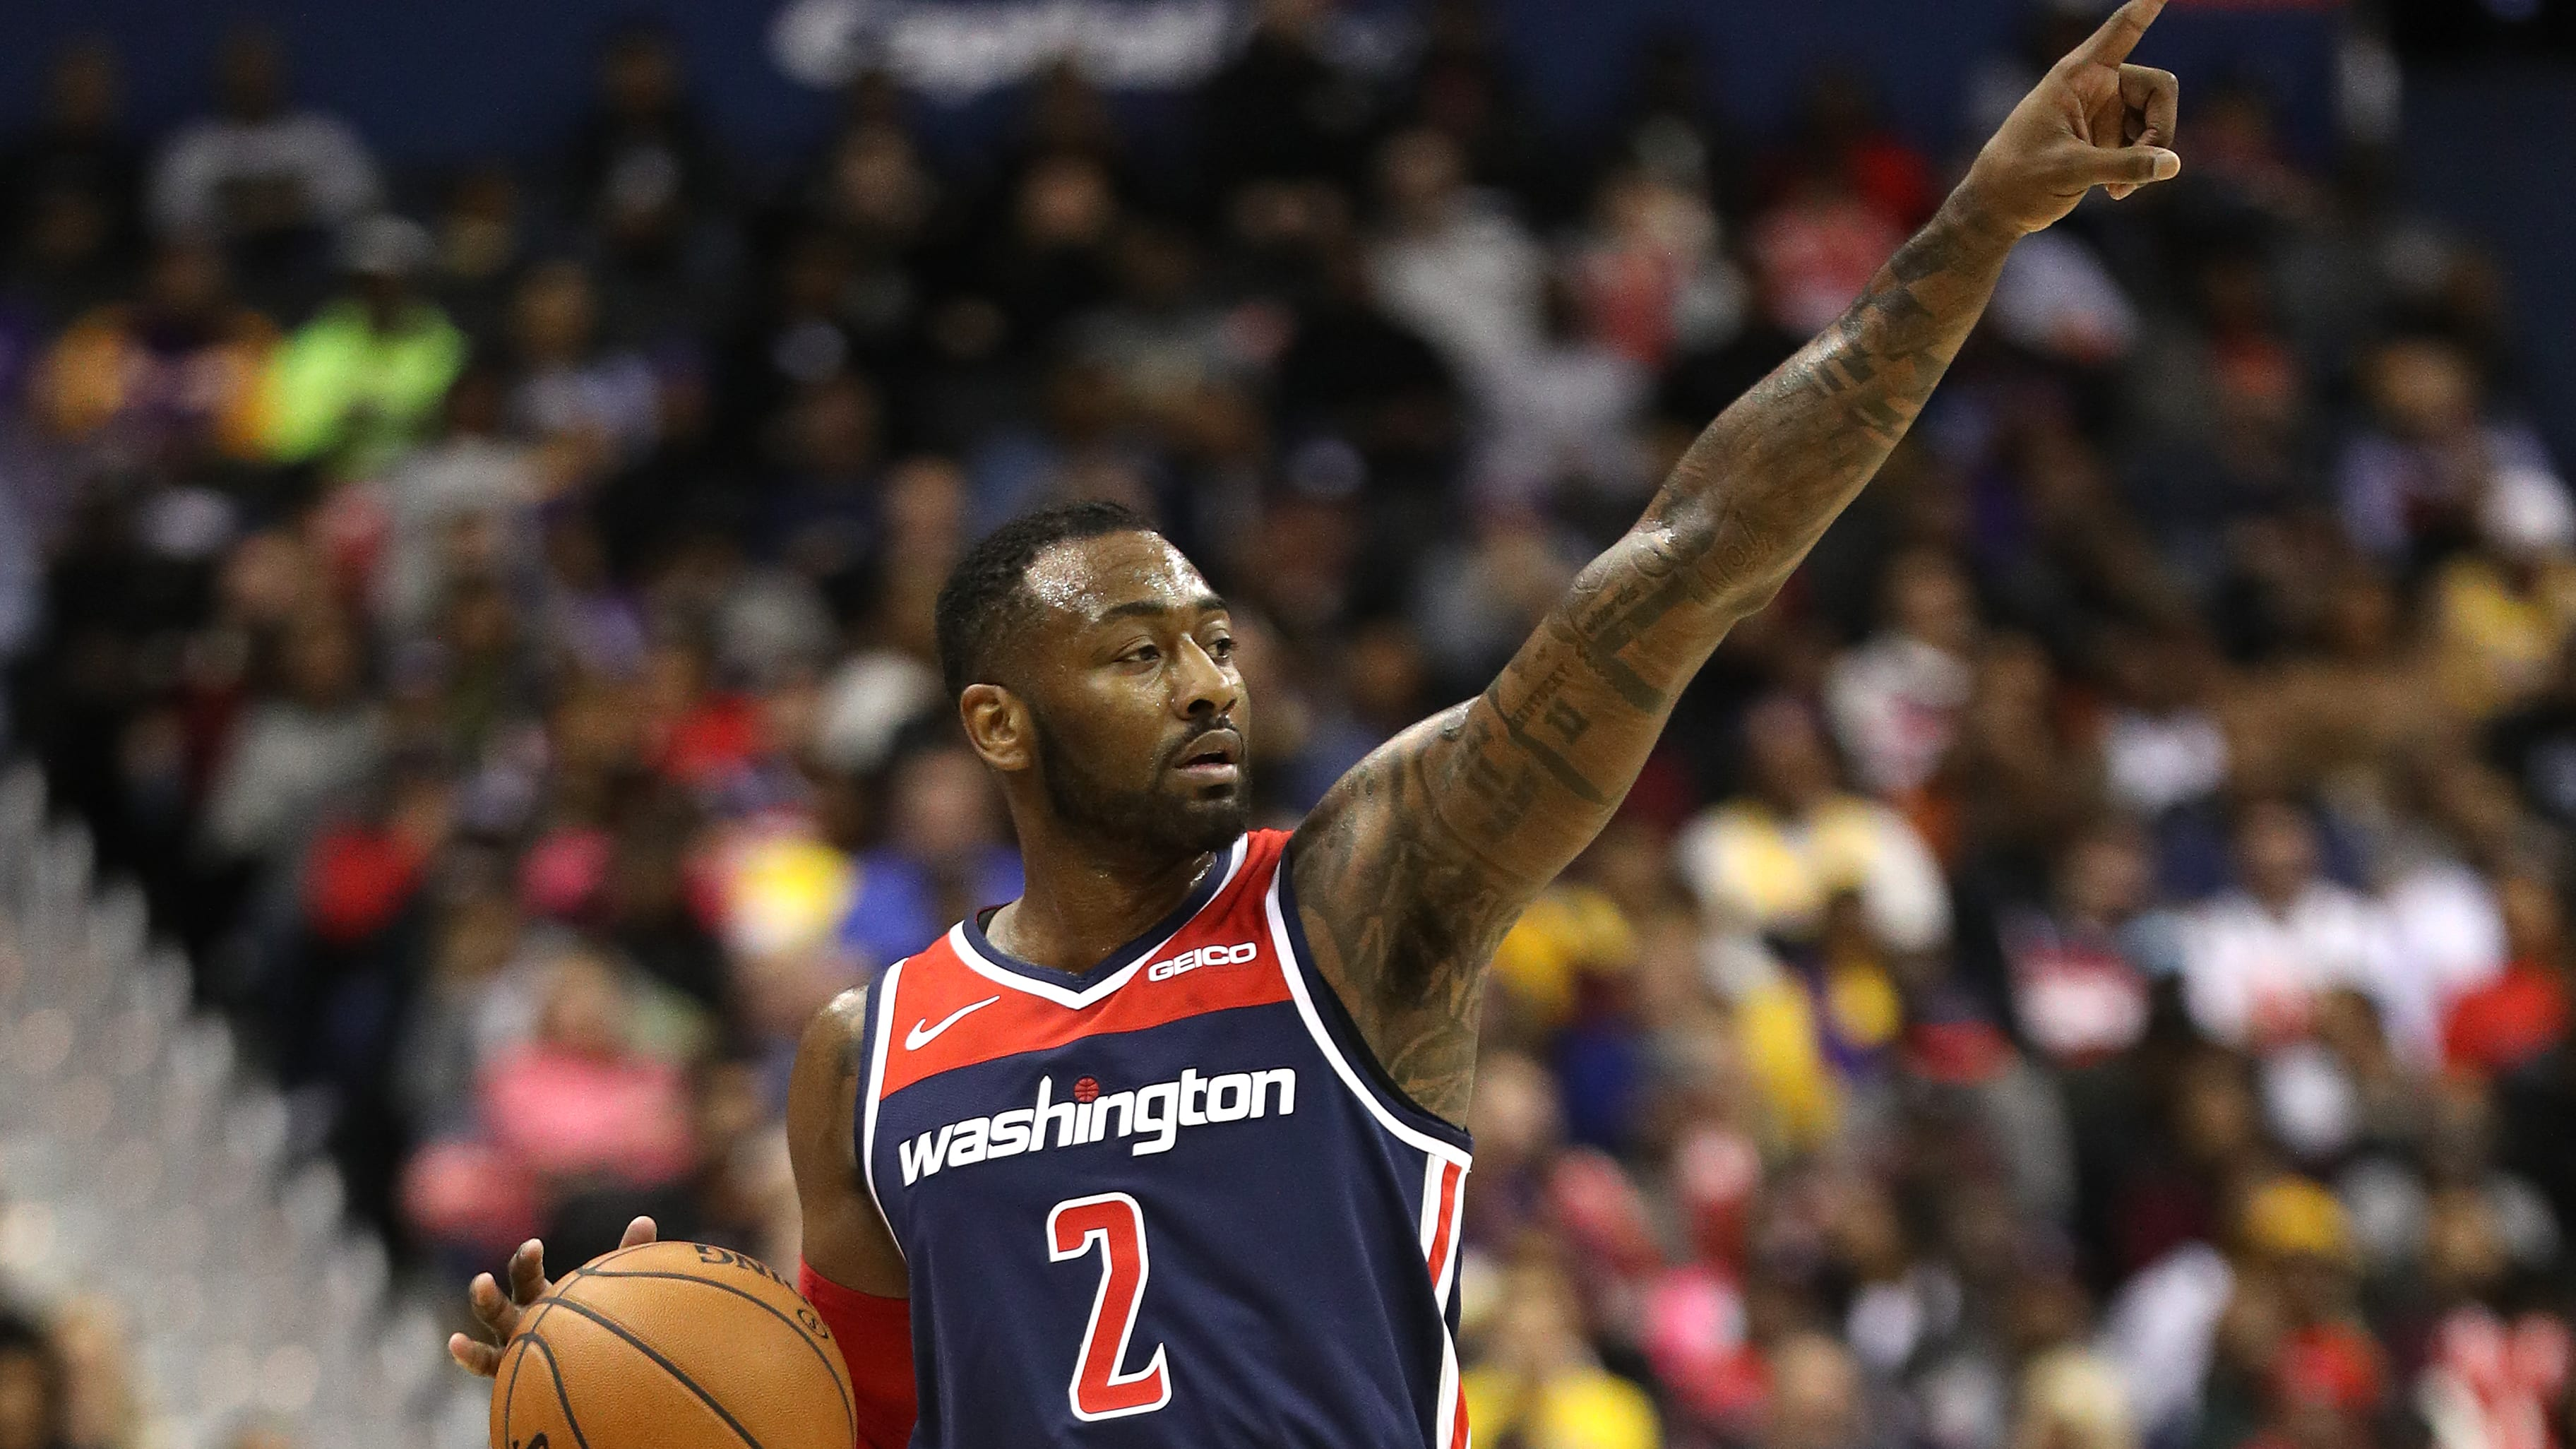 WASHINGTON, DC - DECEMBER 16: John Wall #2 of the Washington Wizards in action against the Los Angeles Lakers at Capital One Arena on December 16, 2018 in Washington, DC. NOTE TO USER: User expressly acknowledges and agrees that, by downloading and or using this photograph, User is consenting to the terms and conditions of the Getty Images License Agreement. (Photo by Patrick Smith/Getty Images)